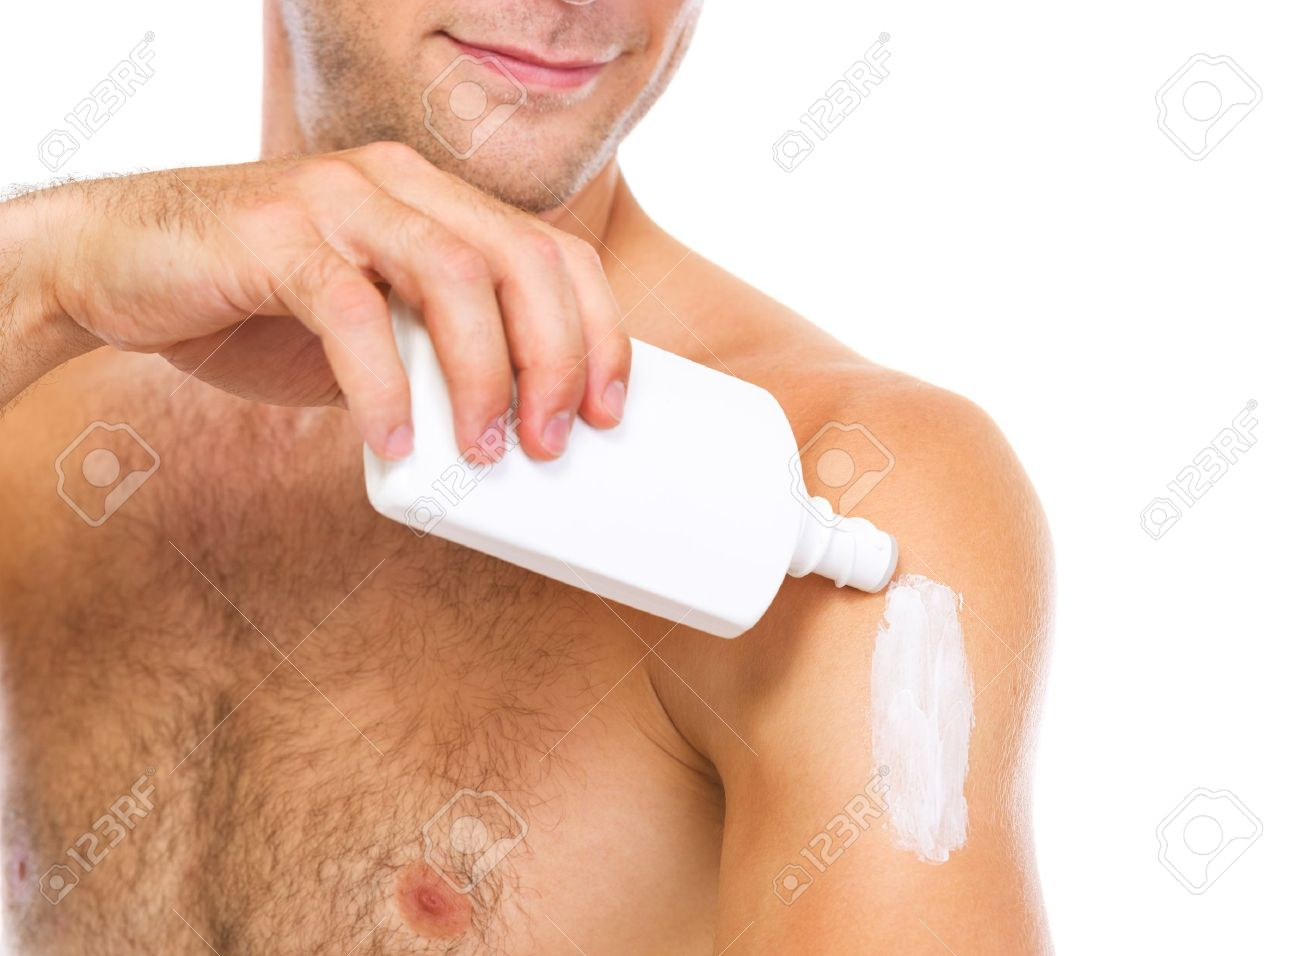 Image result for images of men putting body cream on their body